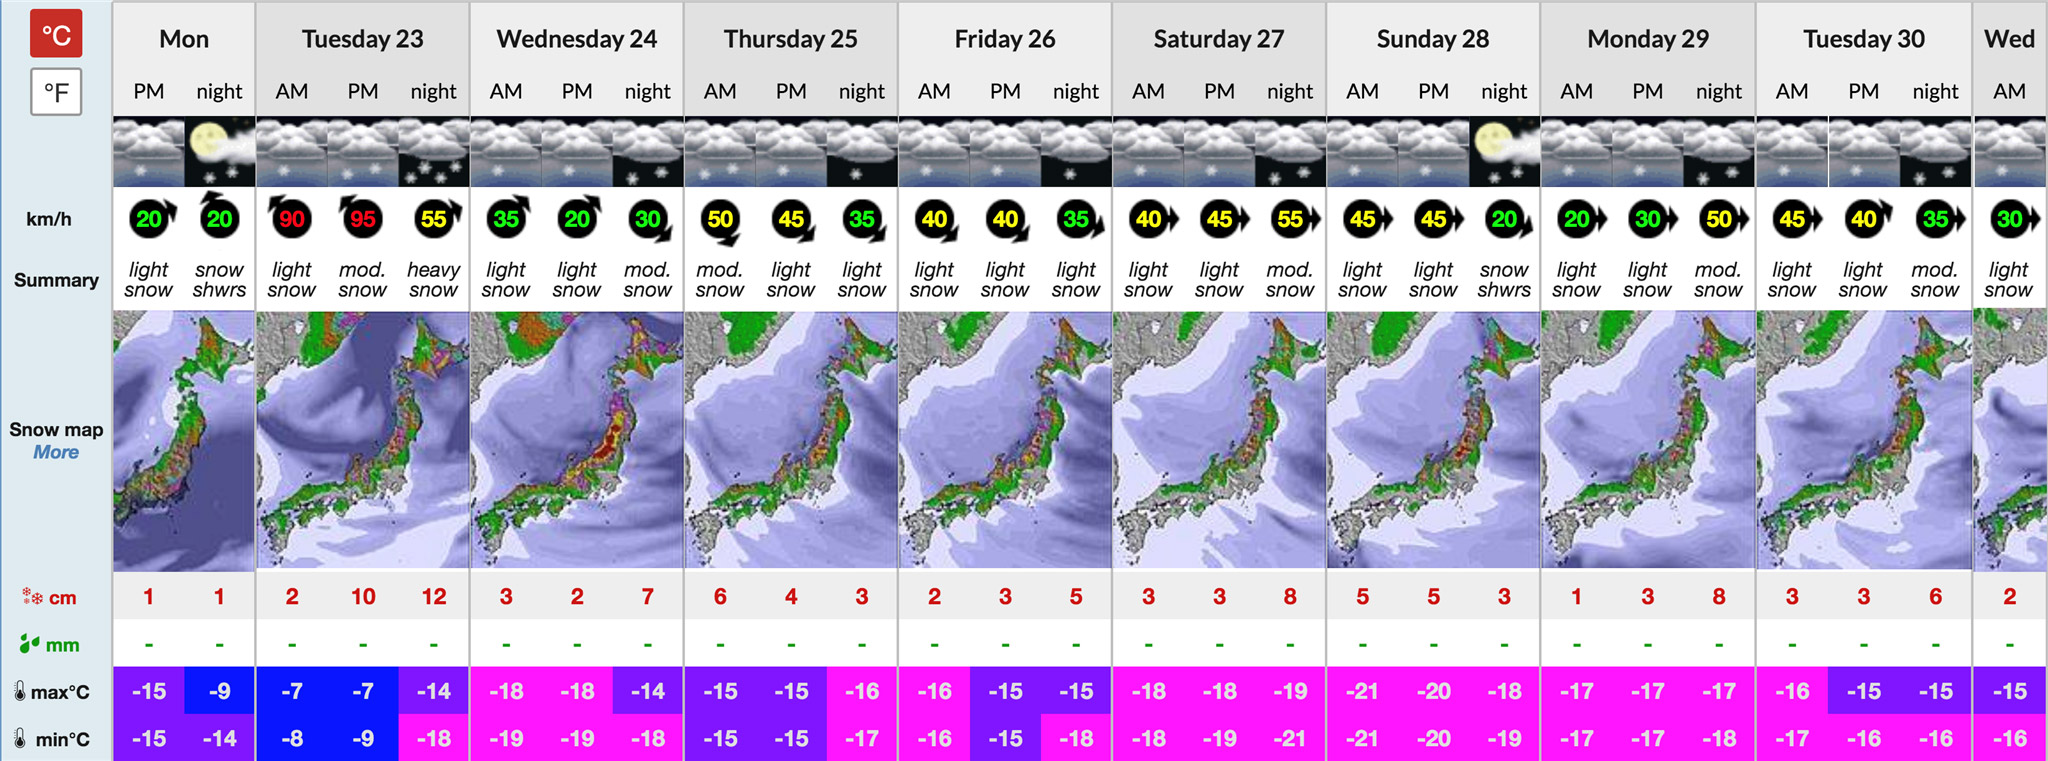 A return to classic deep winter on the way